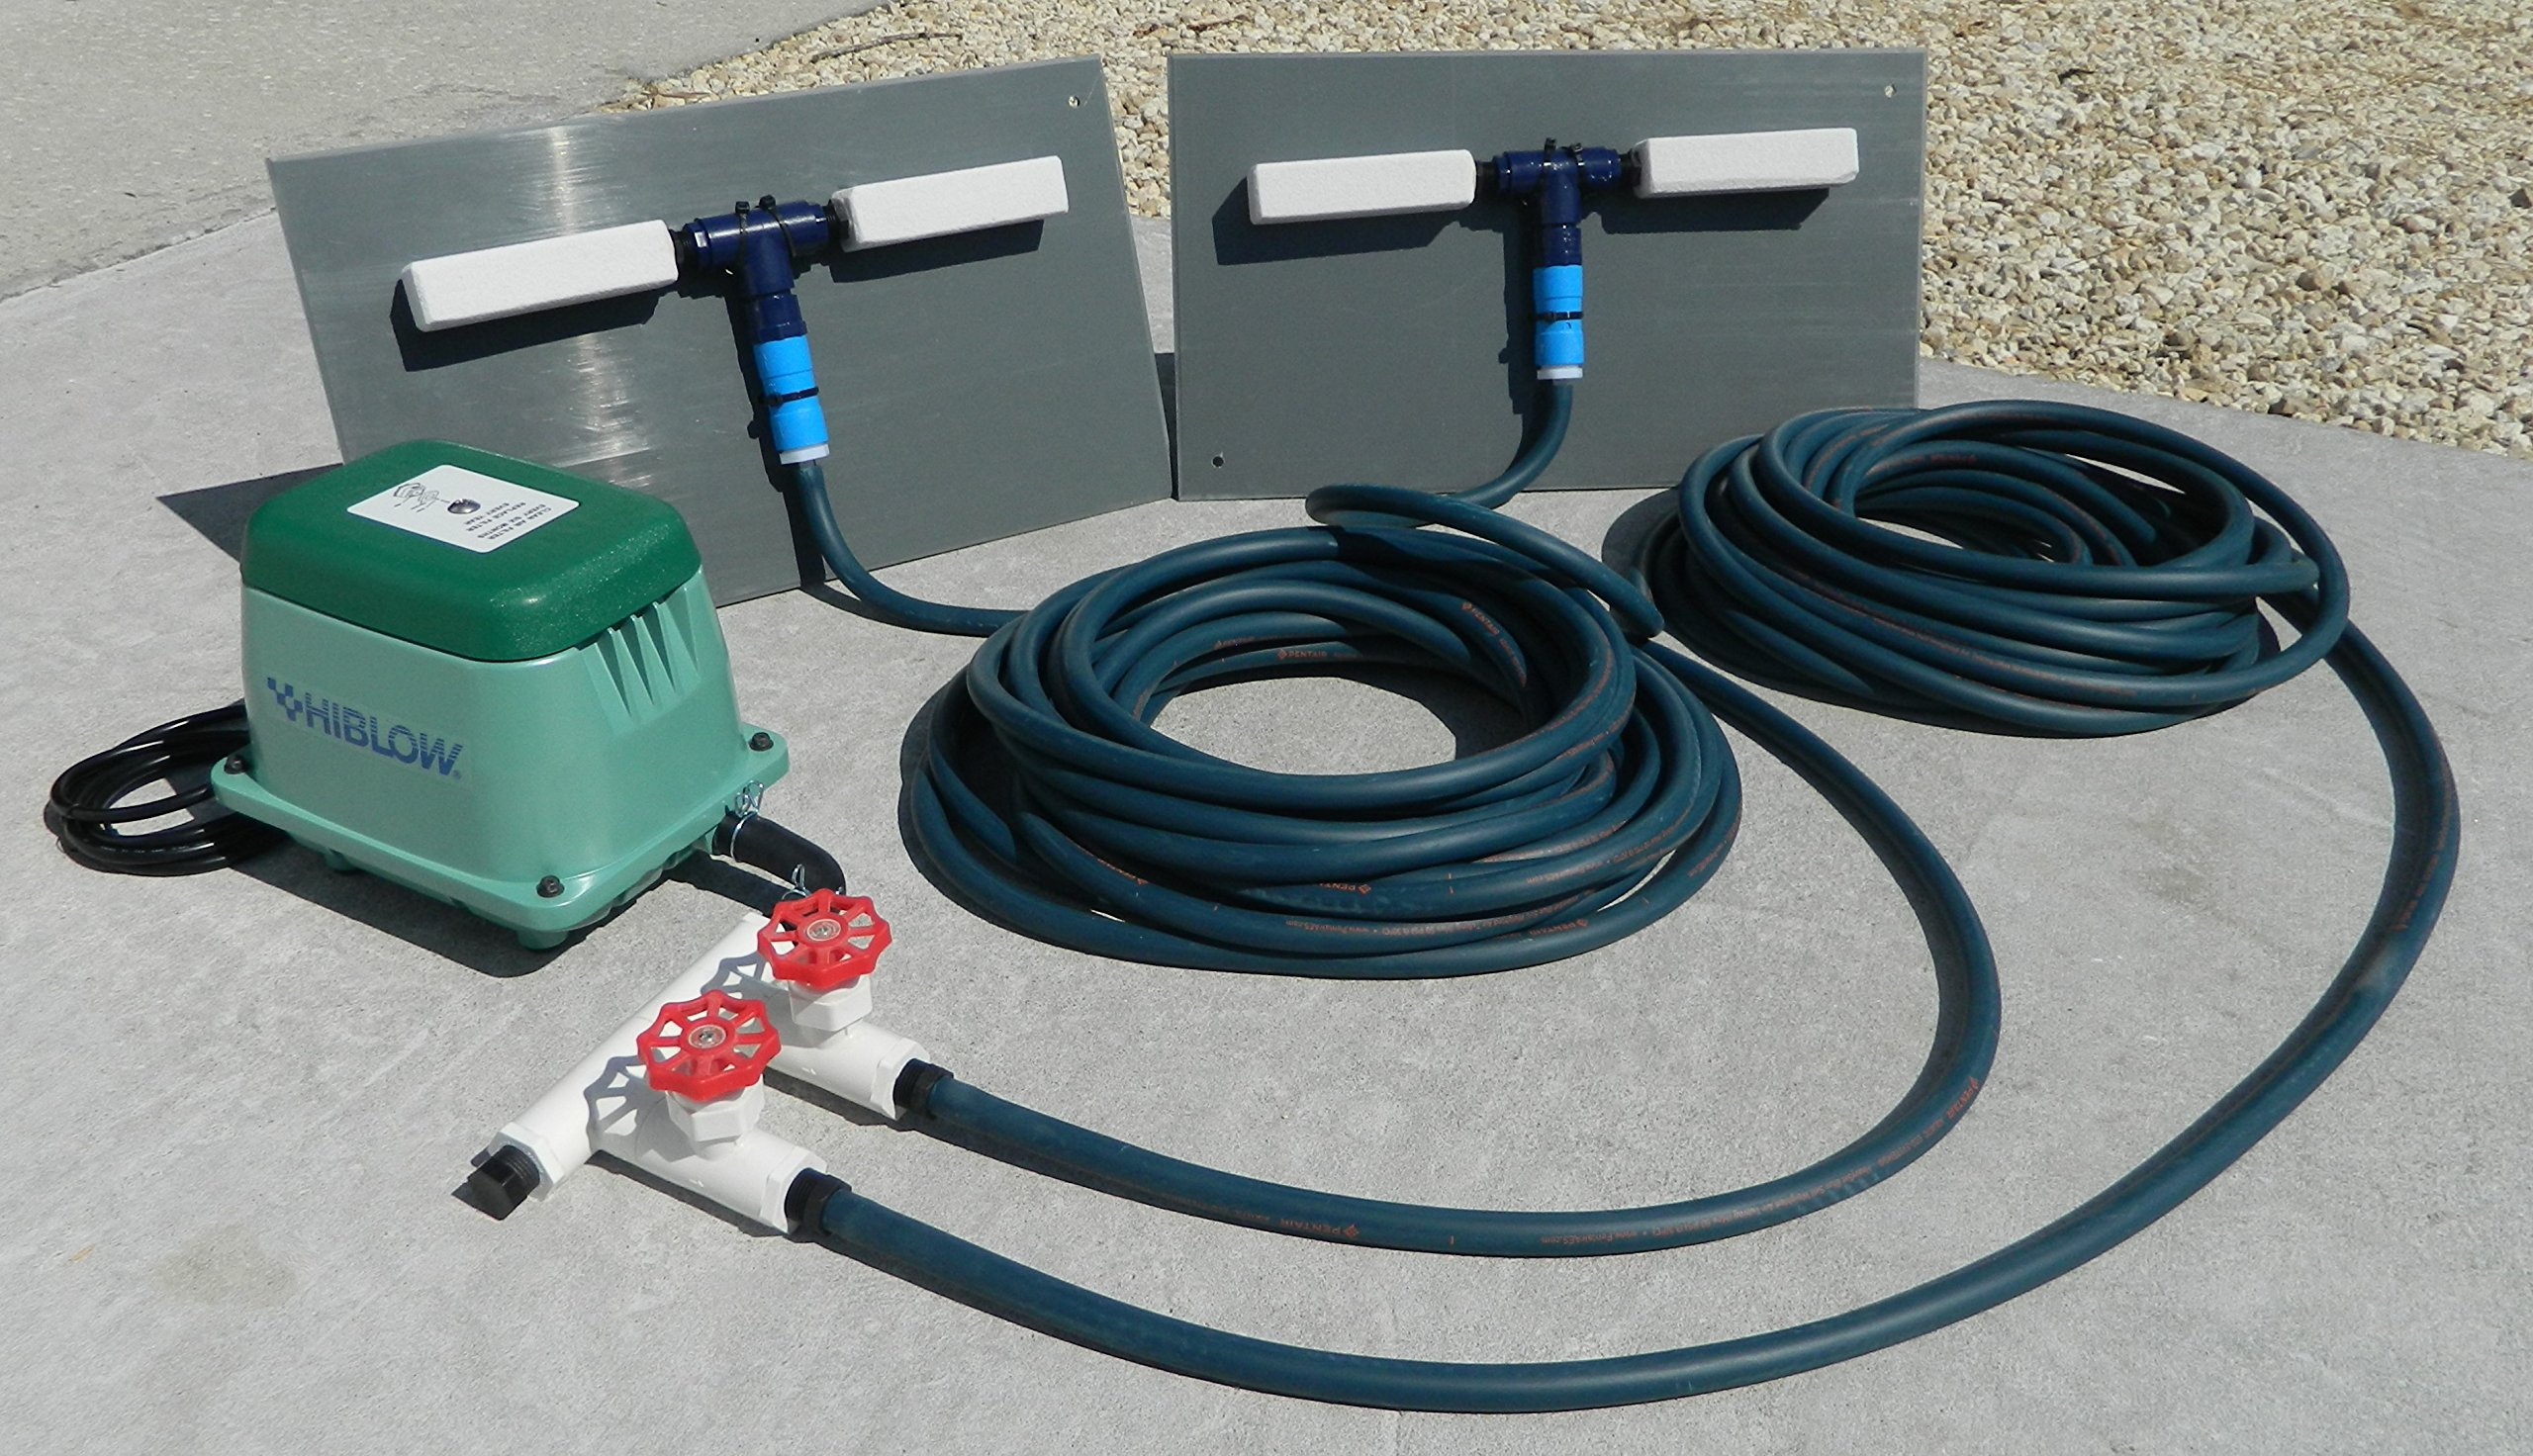 Model #ADS80 Air Diffuser System for Koi Ponds and Water Gardens by: Bubblemac Industries Inc.